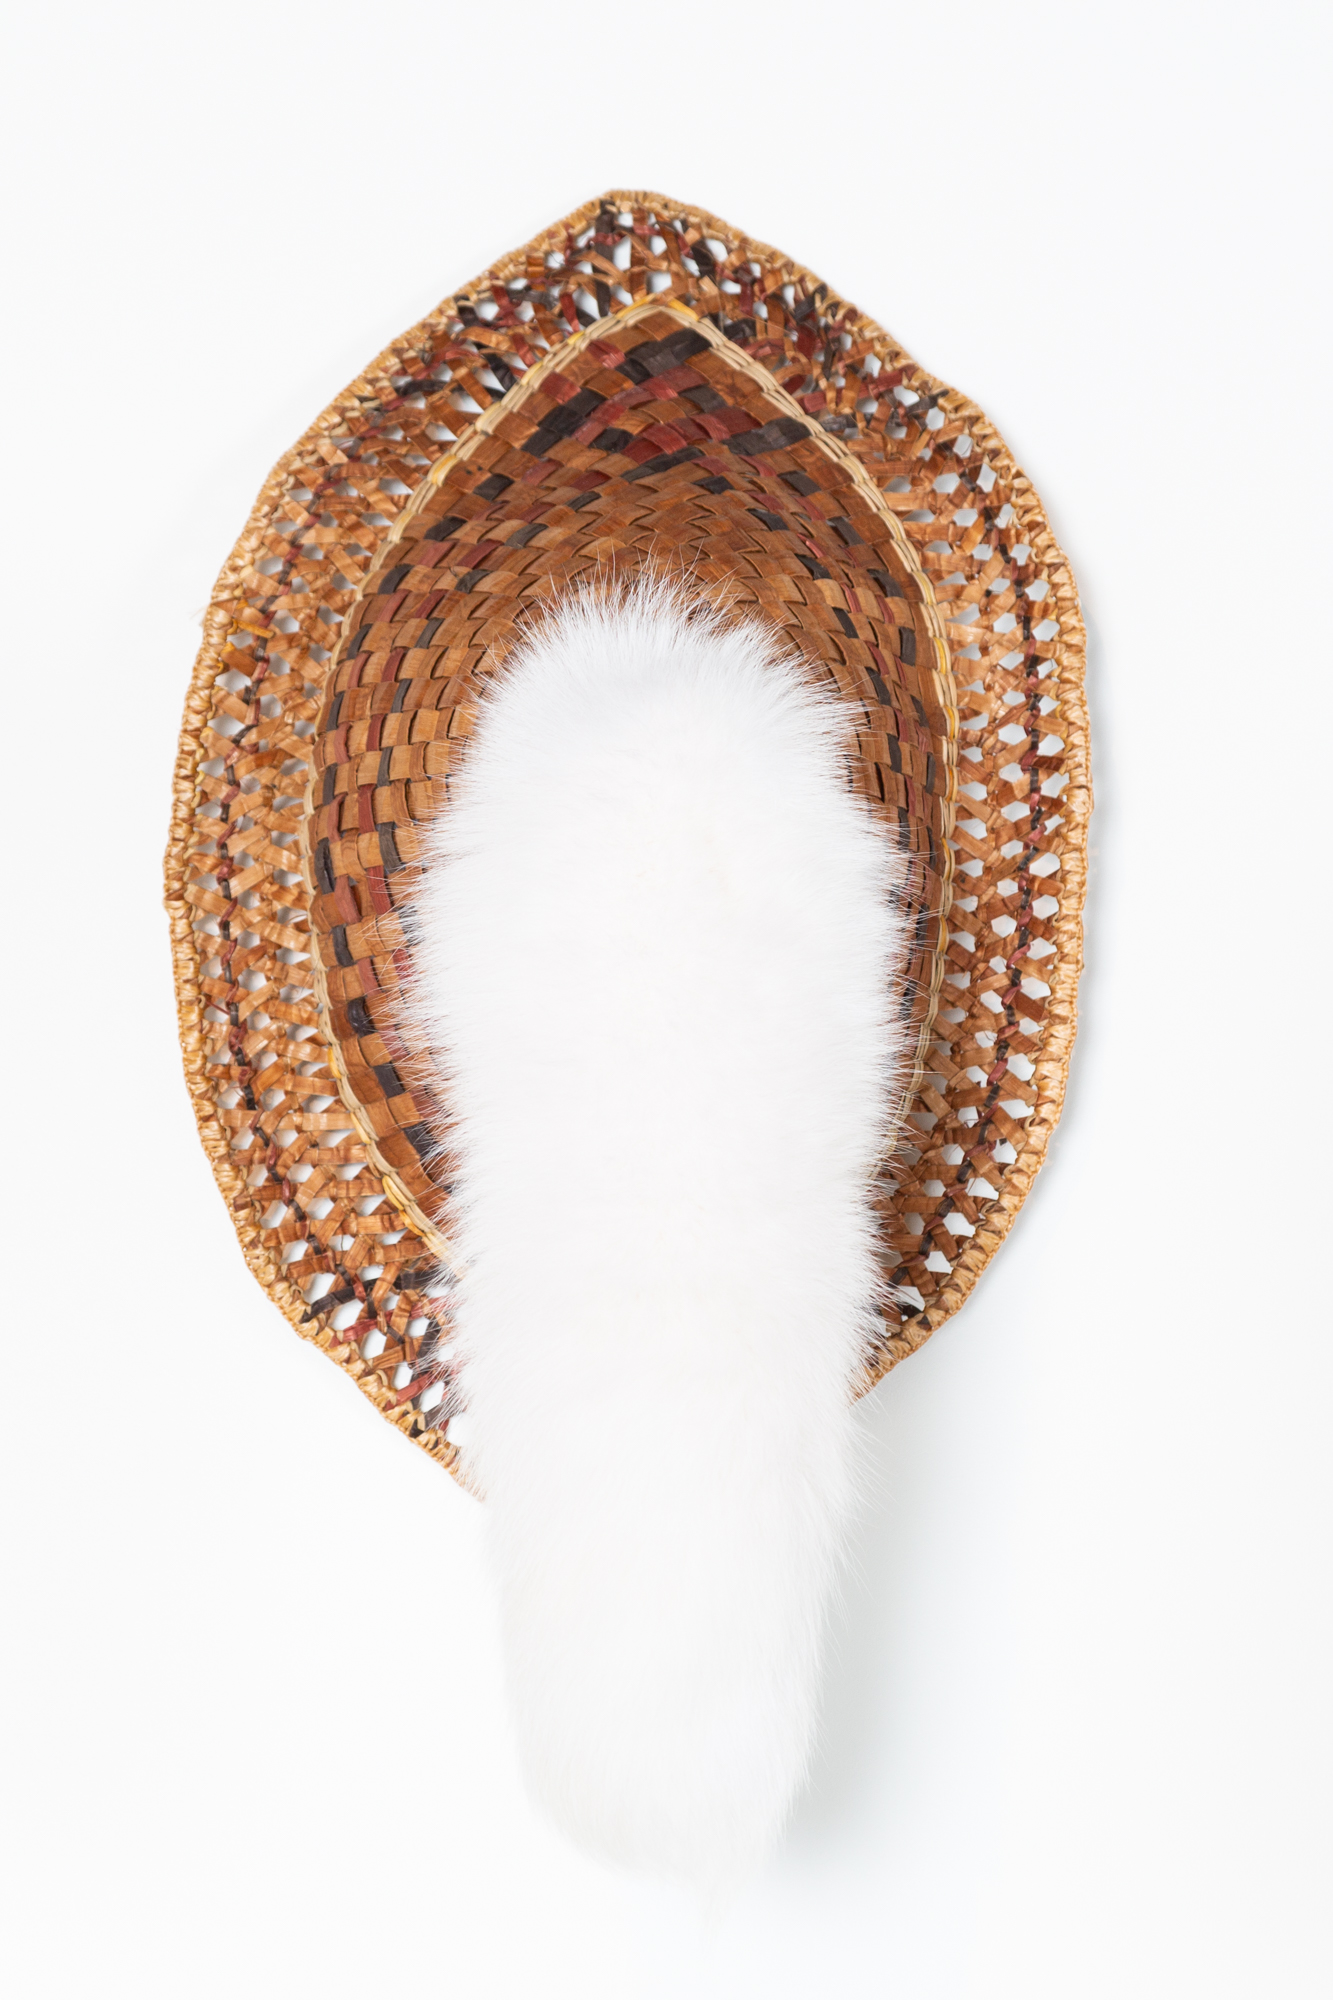 Tuhong (Chamoru fishing hat)